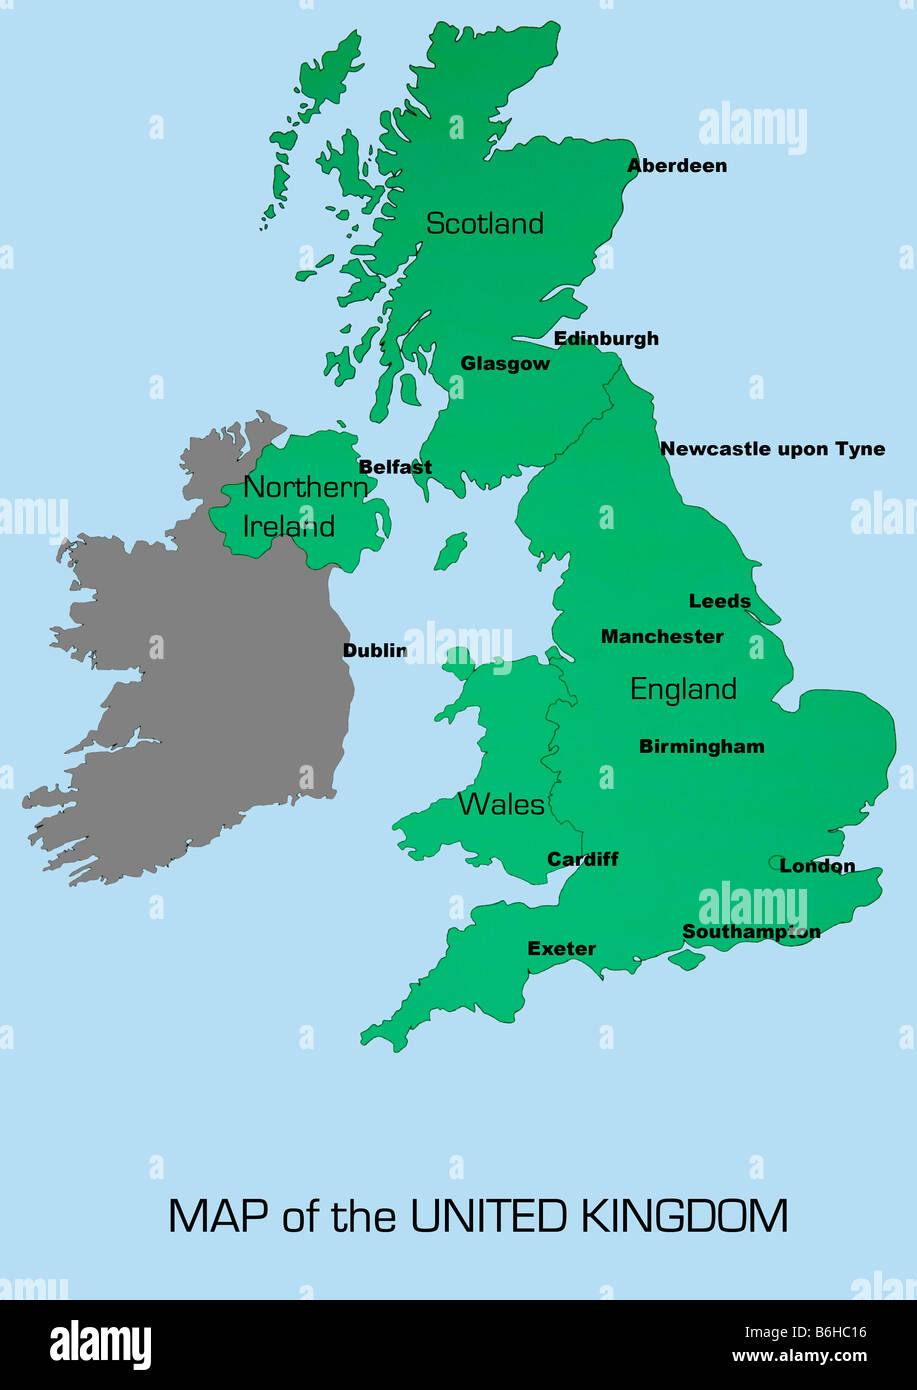 Uk Map Showing England Scotland Wales And Northern Ireland